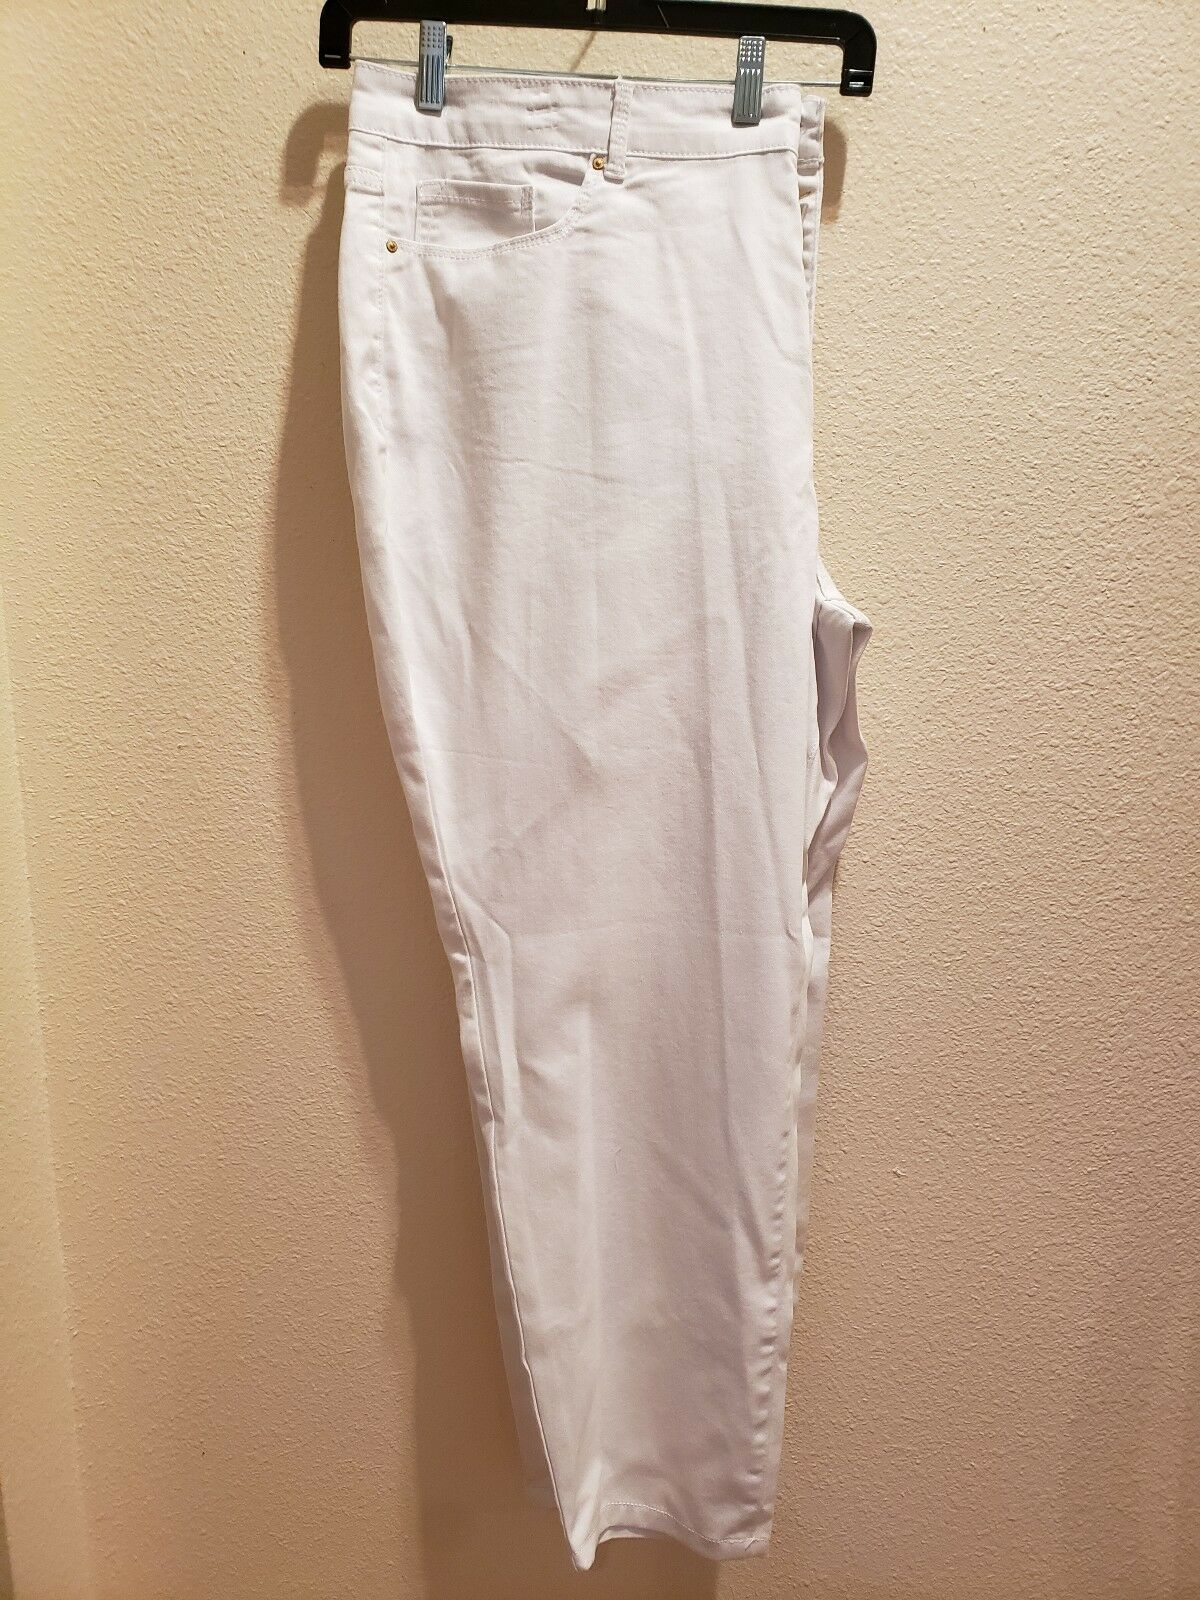 New VINTAGE AMERICA bluees Size 24W White Ankle Length Jeans